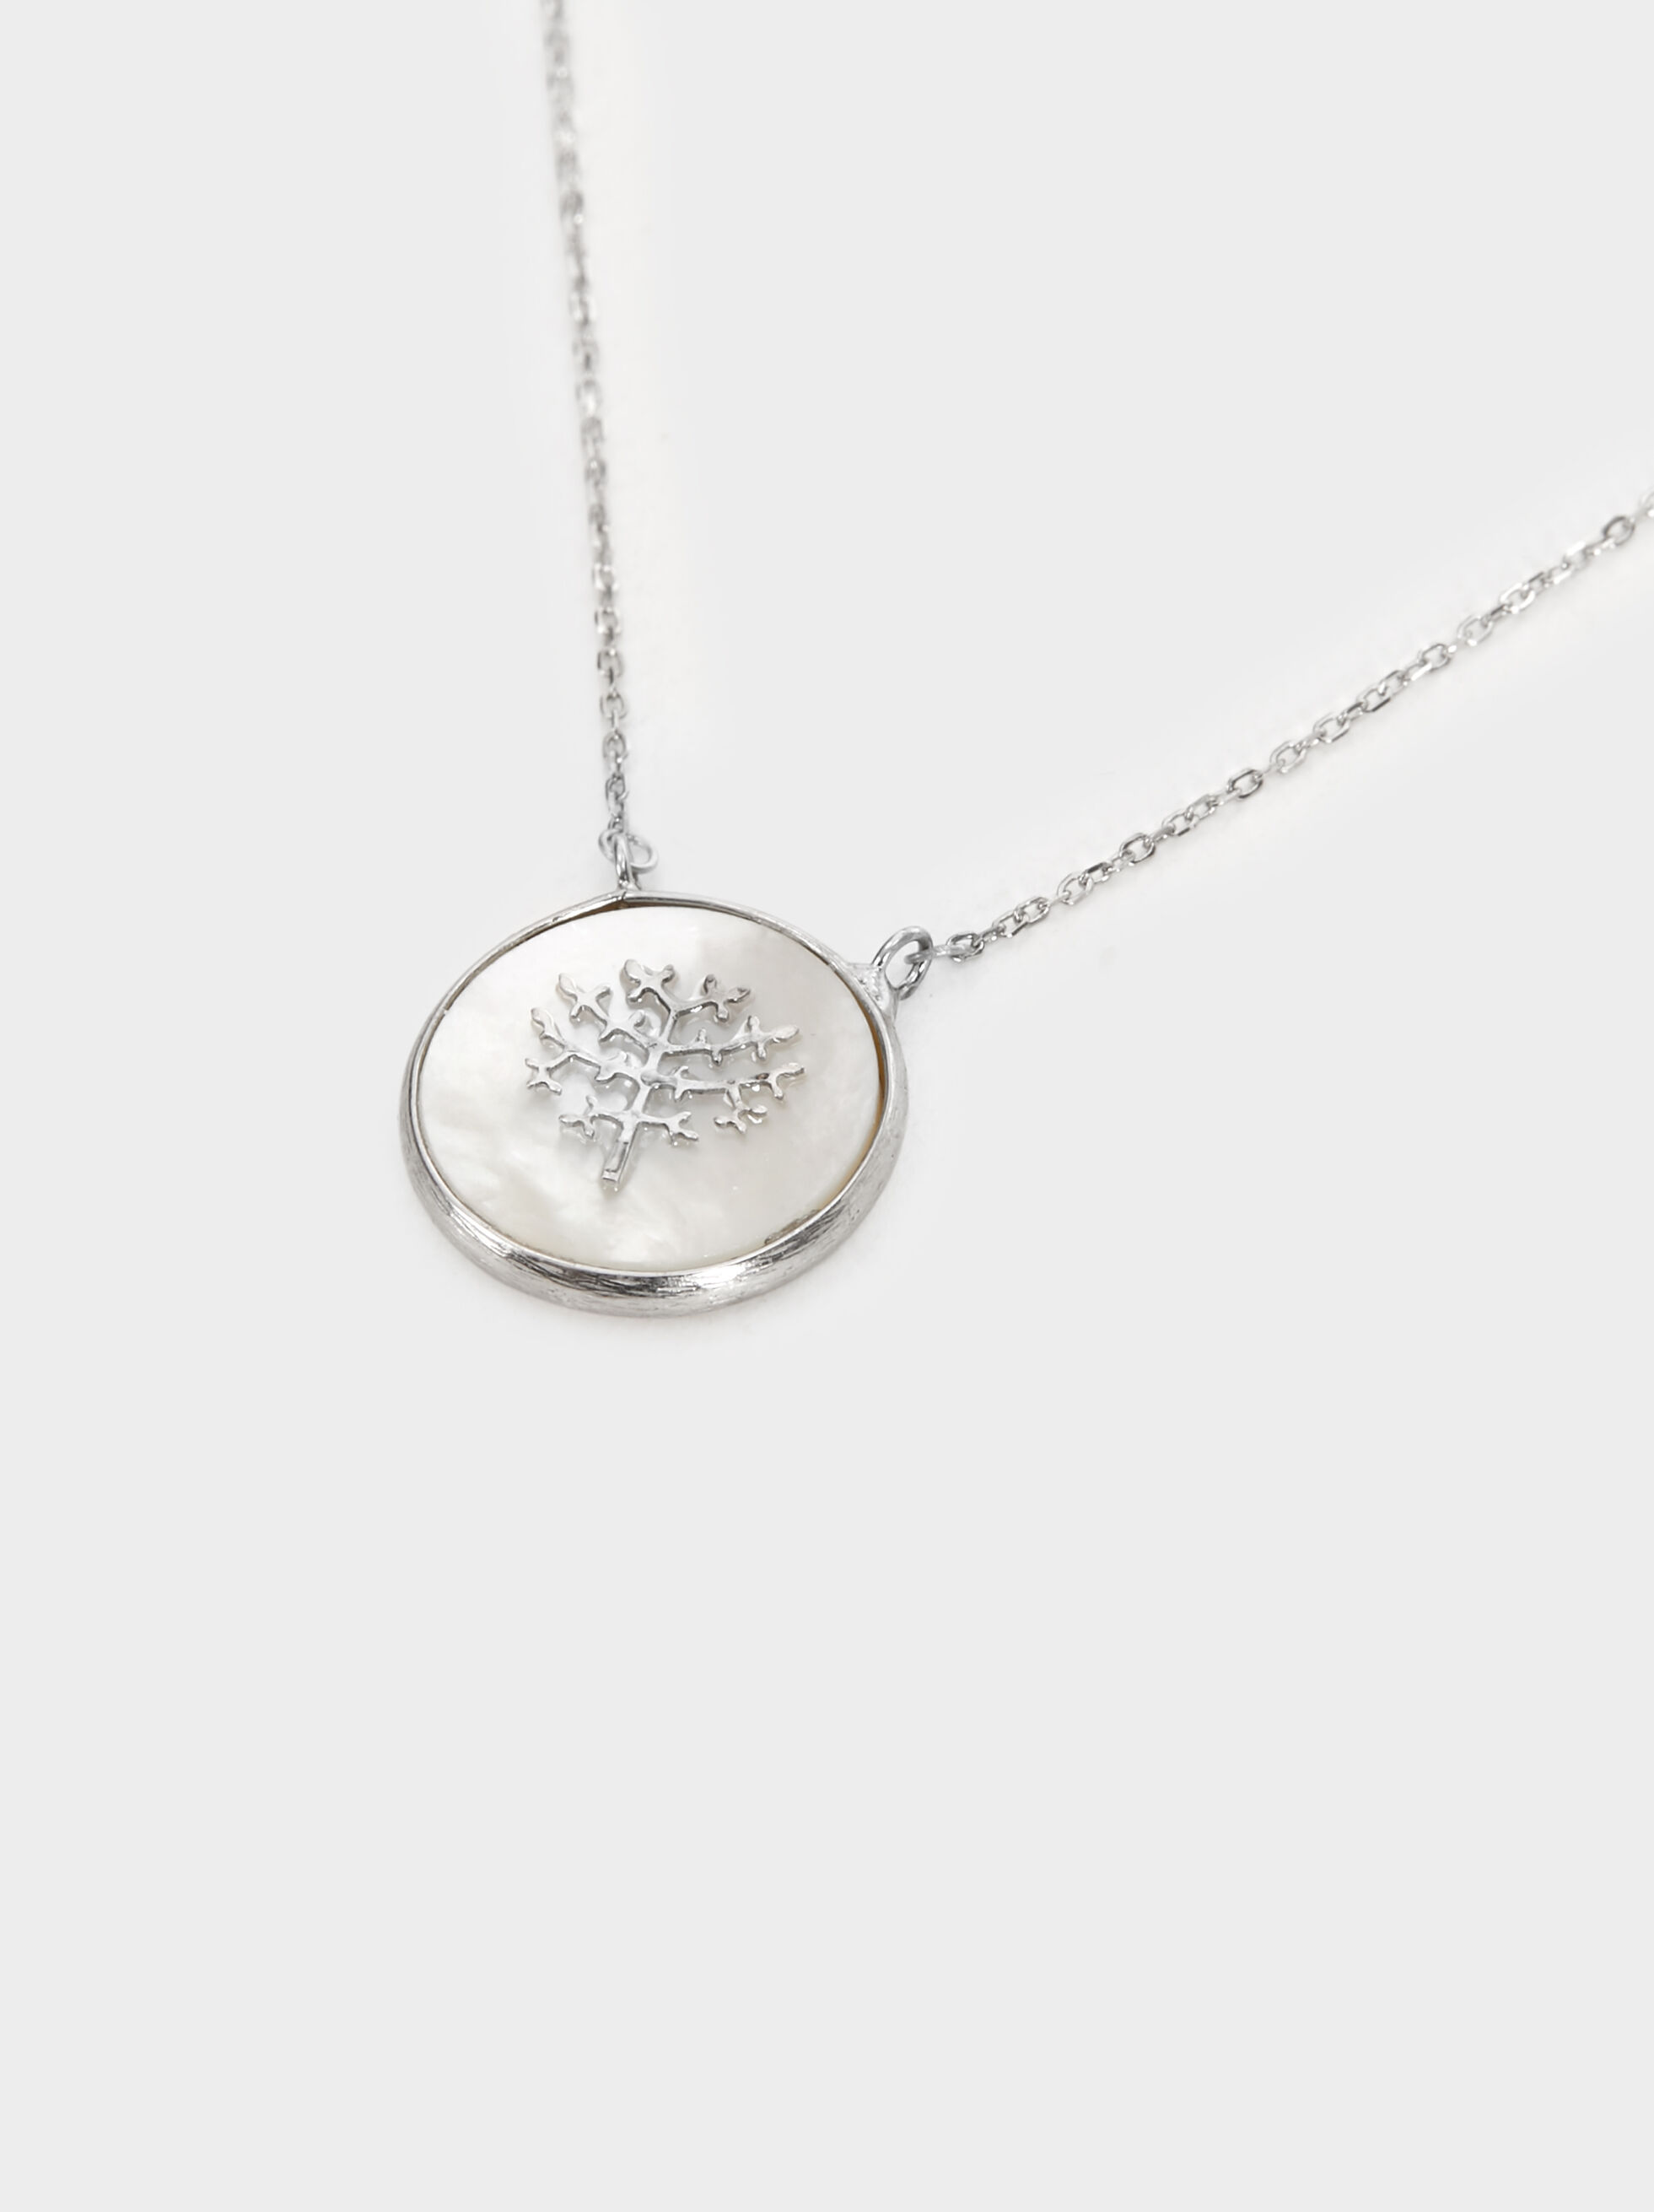 Short 925 Silver Tree Necklace, Beige, hi-res